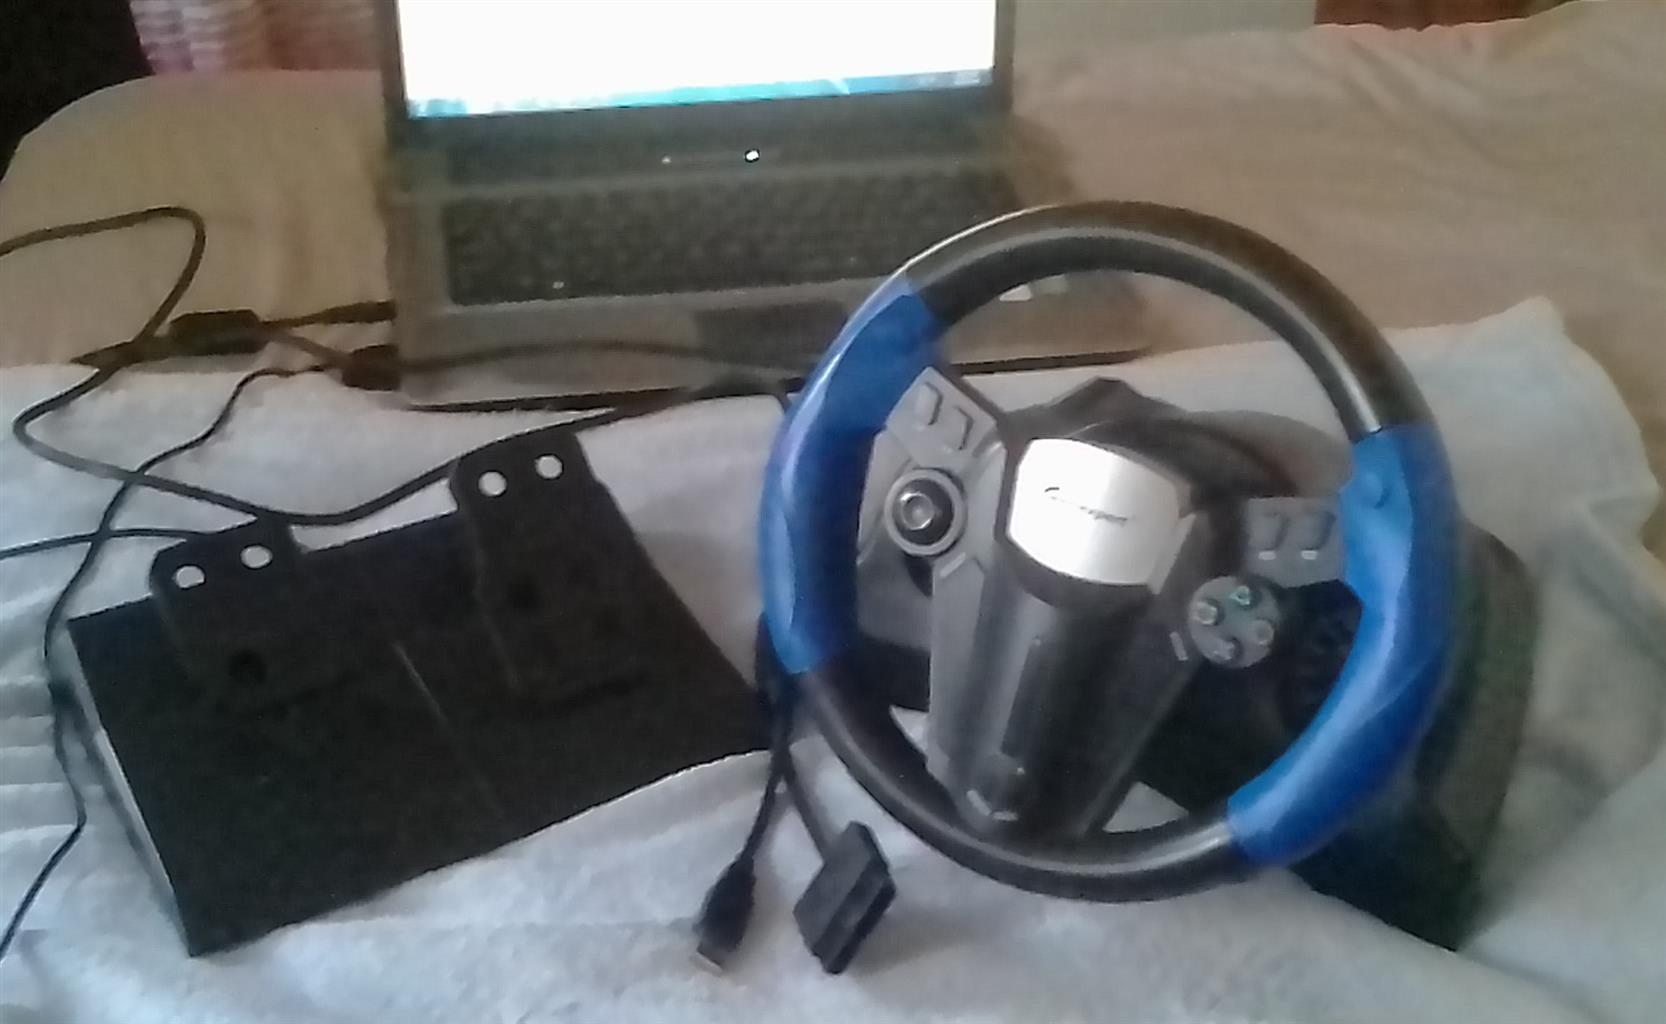 GAMEXPERT STEERING WHEEL AND FOOT PEDAL FOR SALE